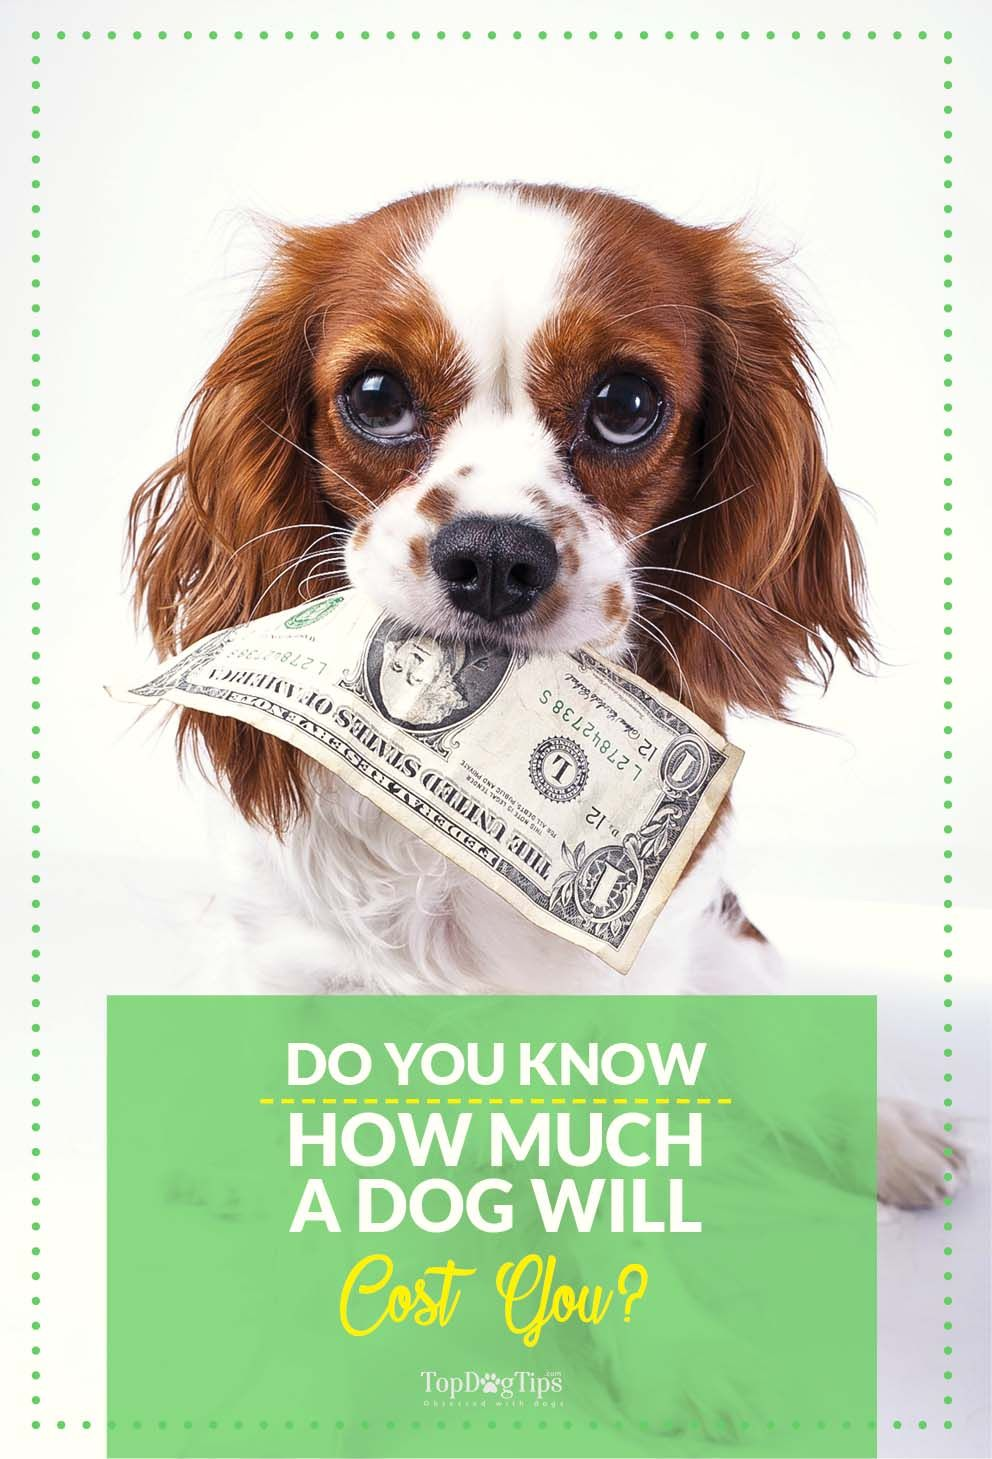 The Hidden Costs Of Dog Ownership With Images Neutering Dogs Dog Ownership Dog Spay